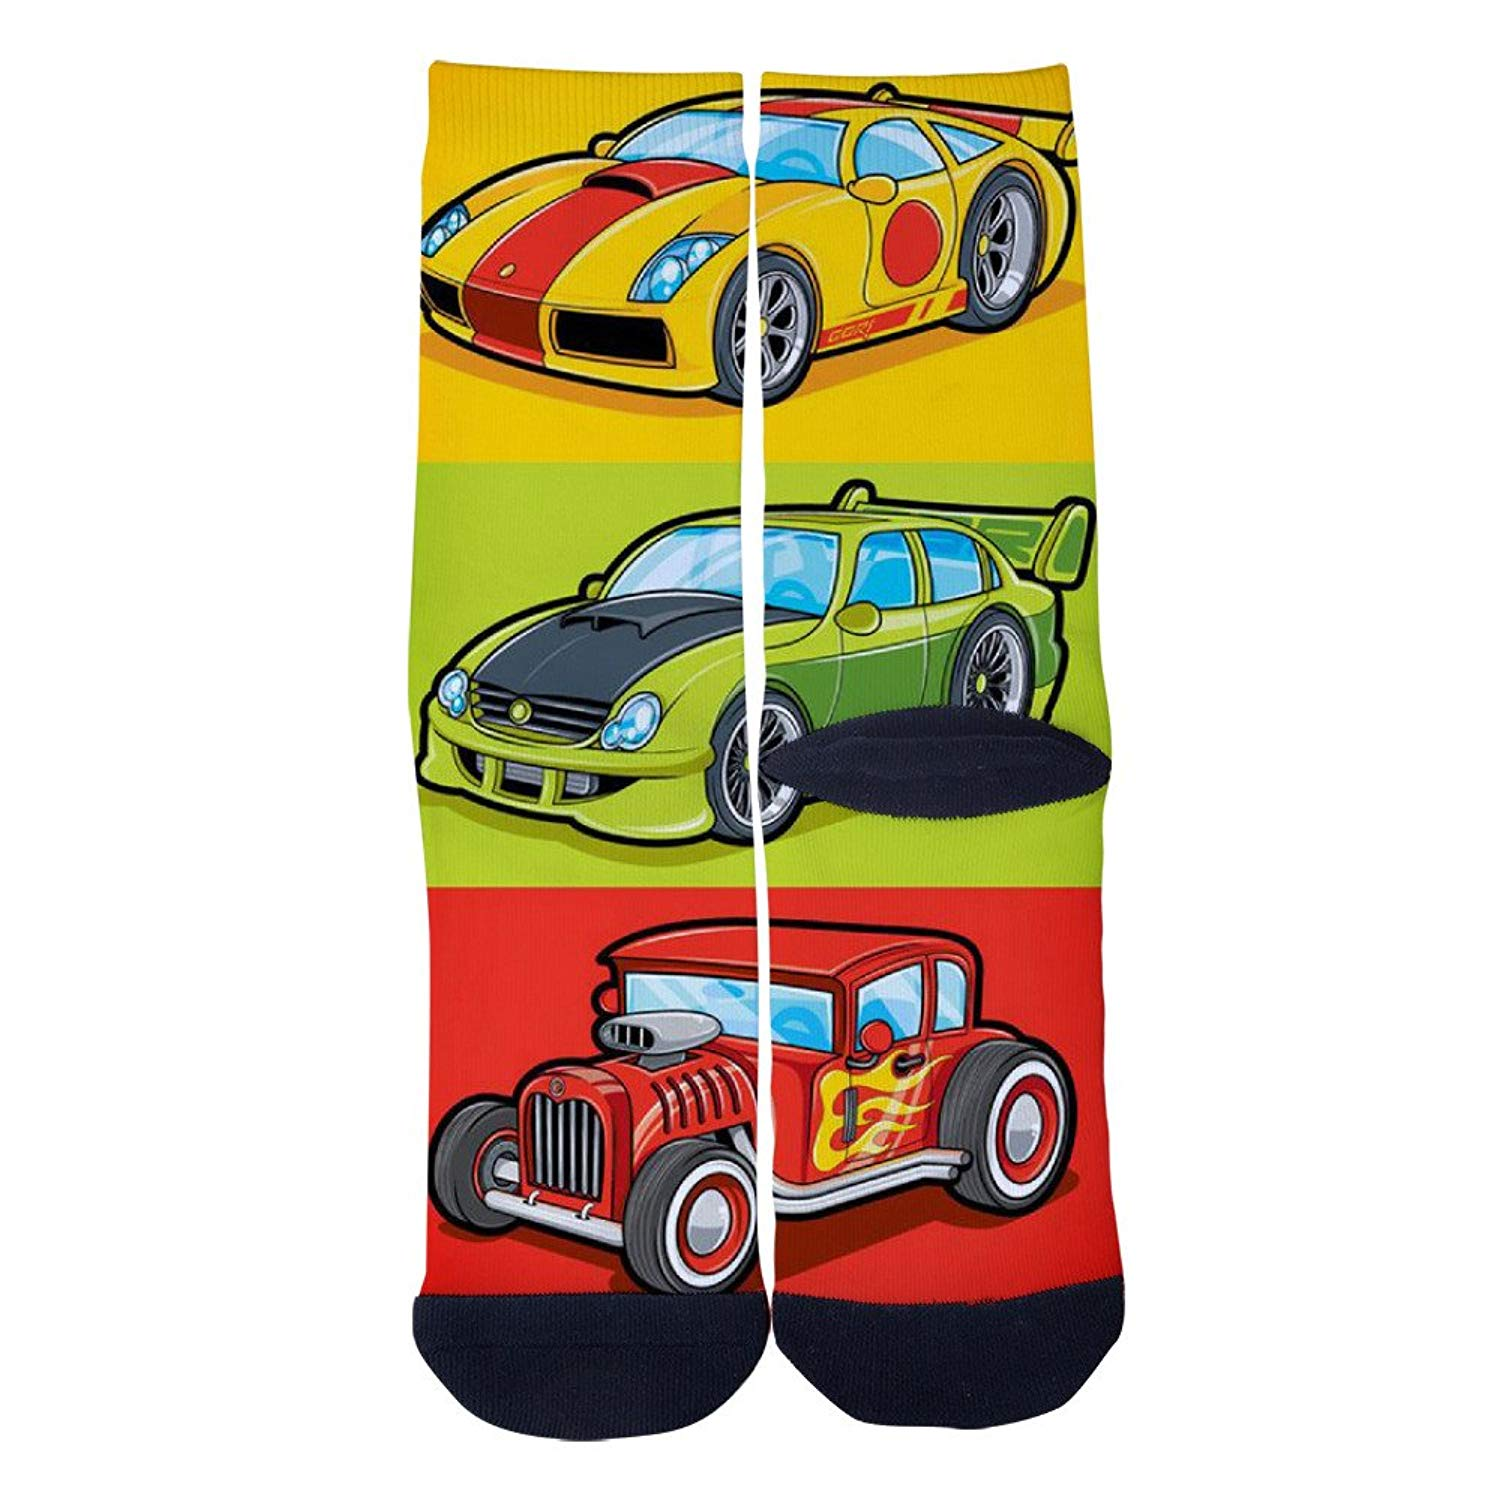 Racing Car Socks Mens Womens Casual Socks Custom Creative Crew Socks